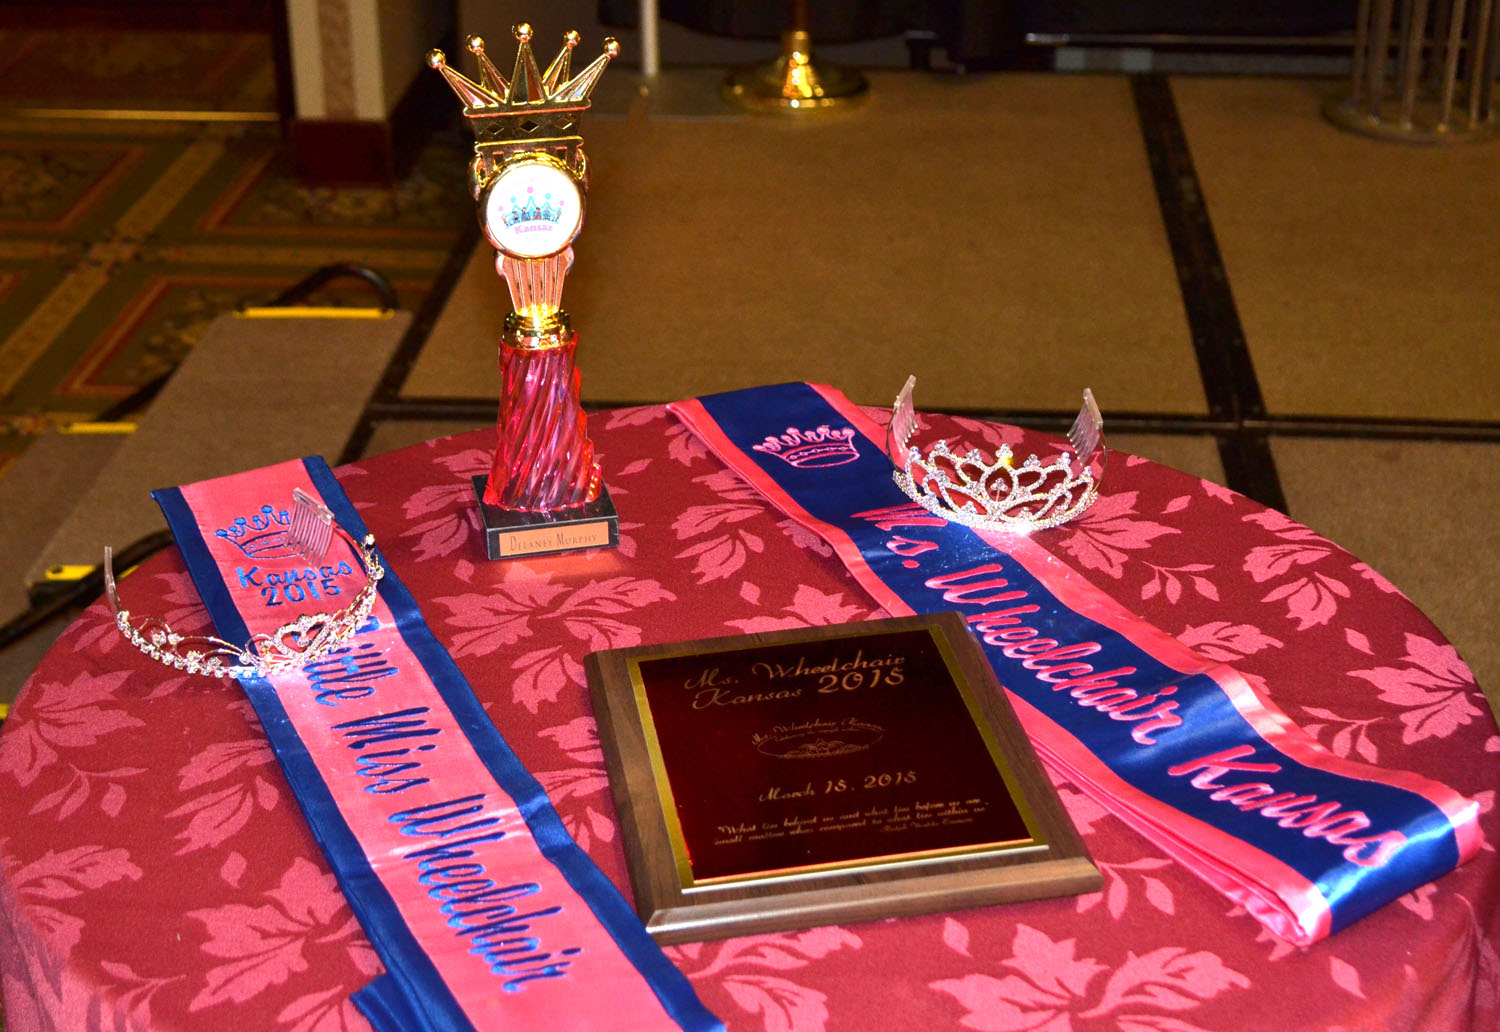 Crowns, sashes, and awards